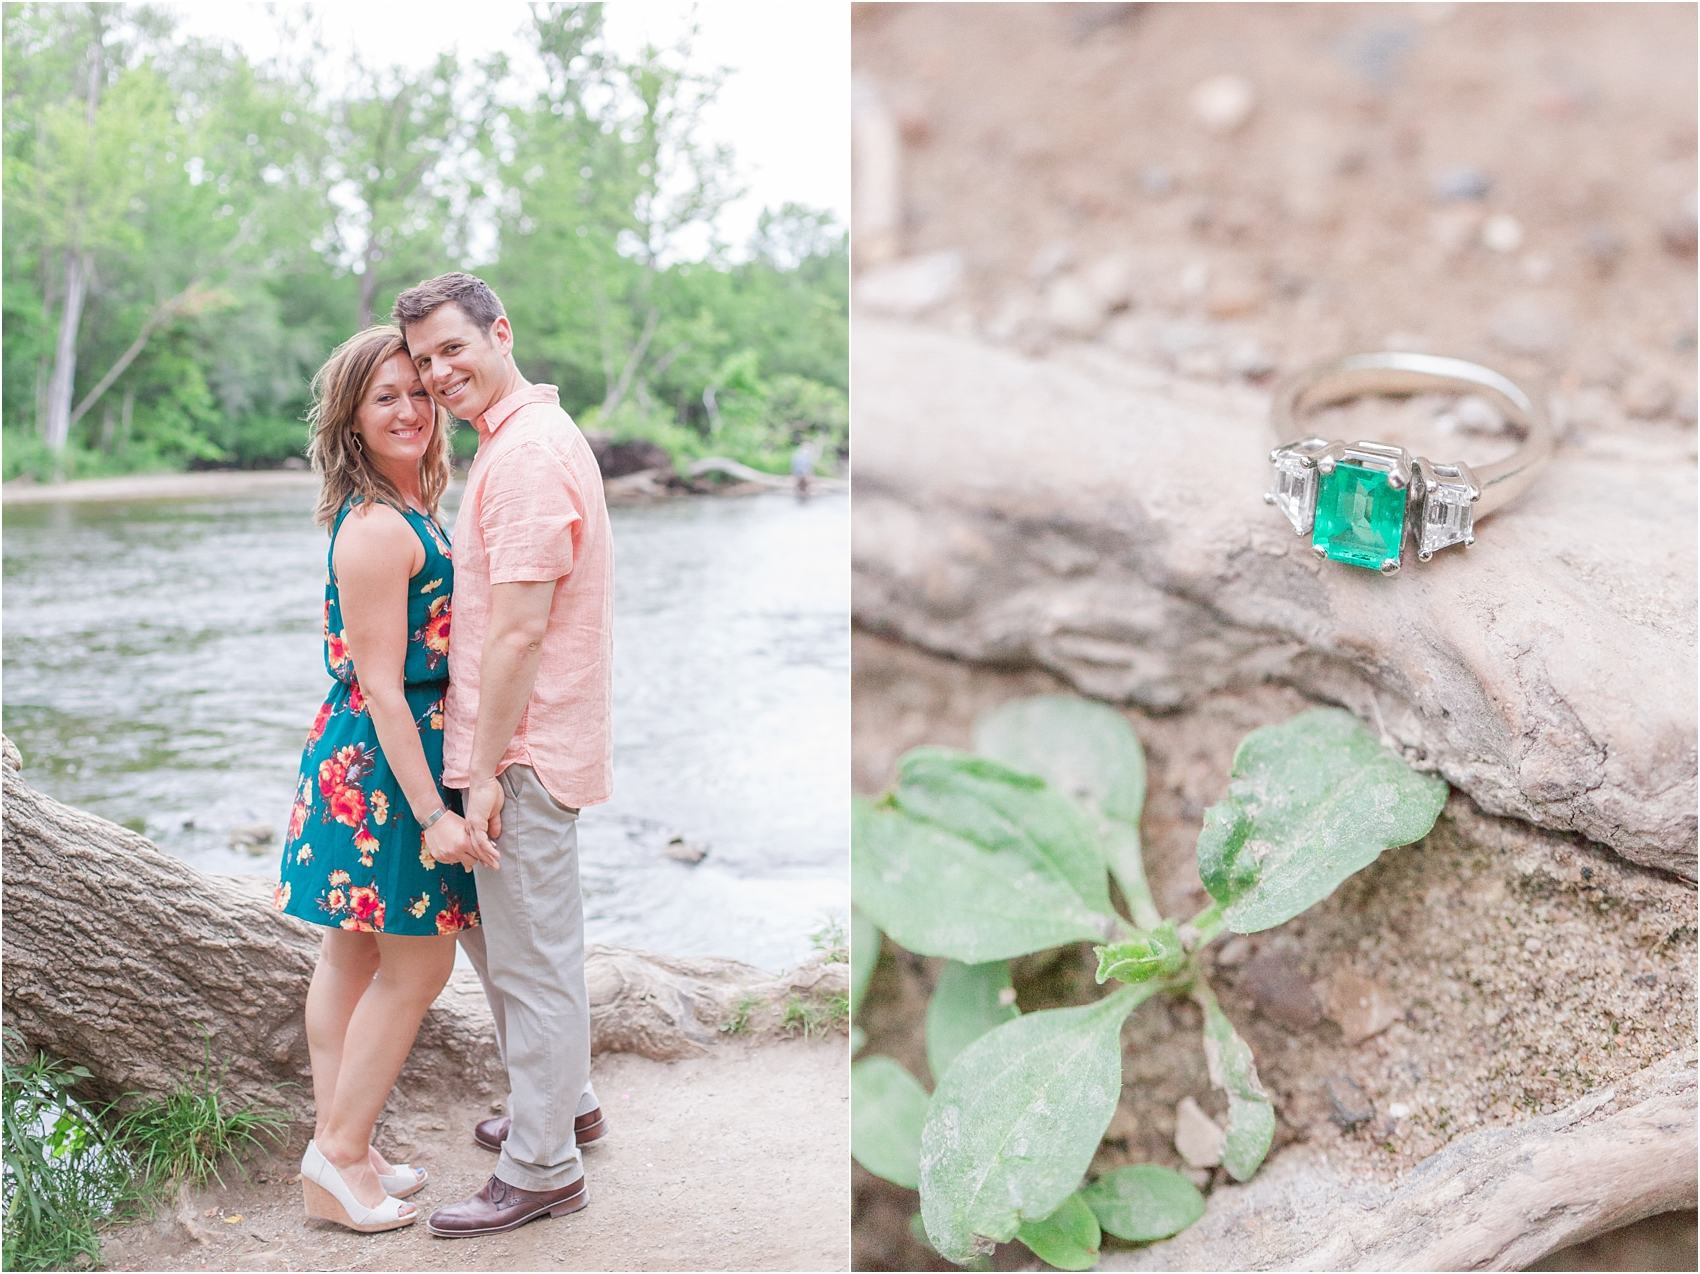 emotional-candid-romantic-engagement-photos-in-detroit-chicago-northern-michigan-by-courtney-carolyn-photography_0021.jpg